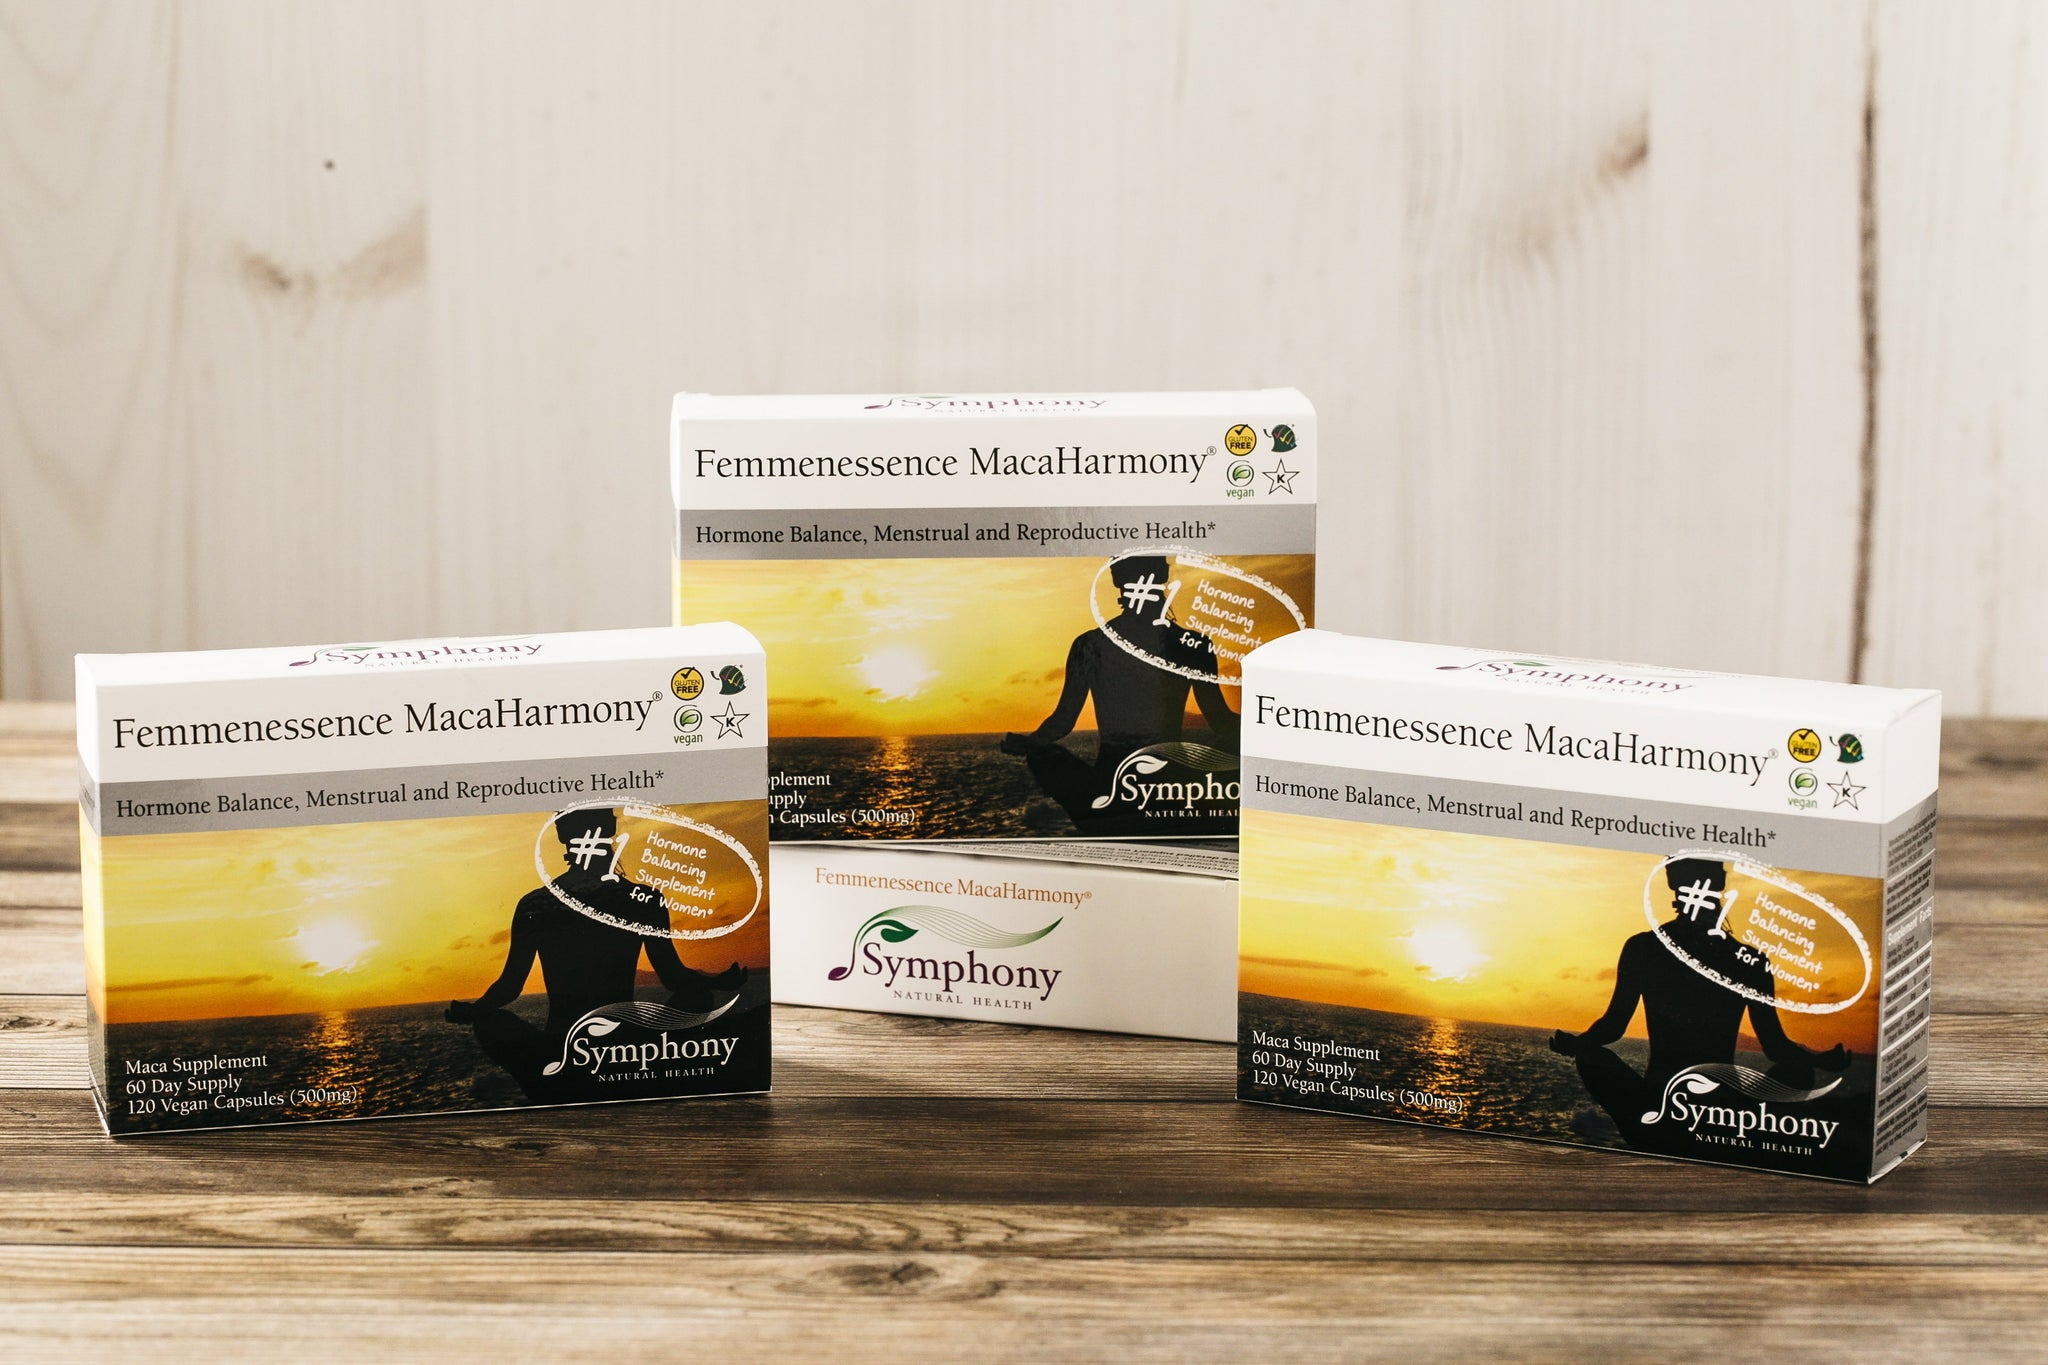 MacaHarmony Welcome Pack, Buy 2 Get 1 Free for first time customers only